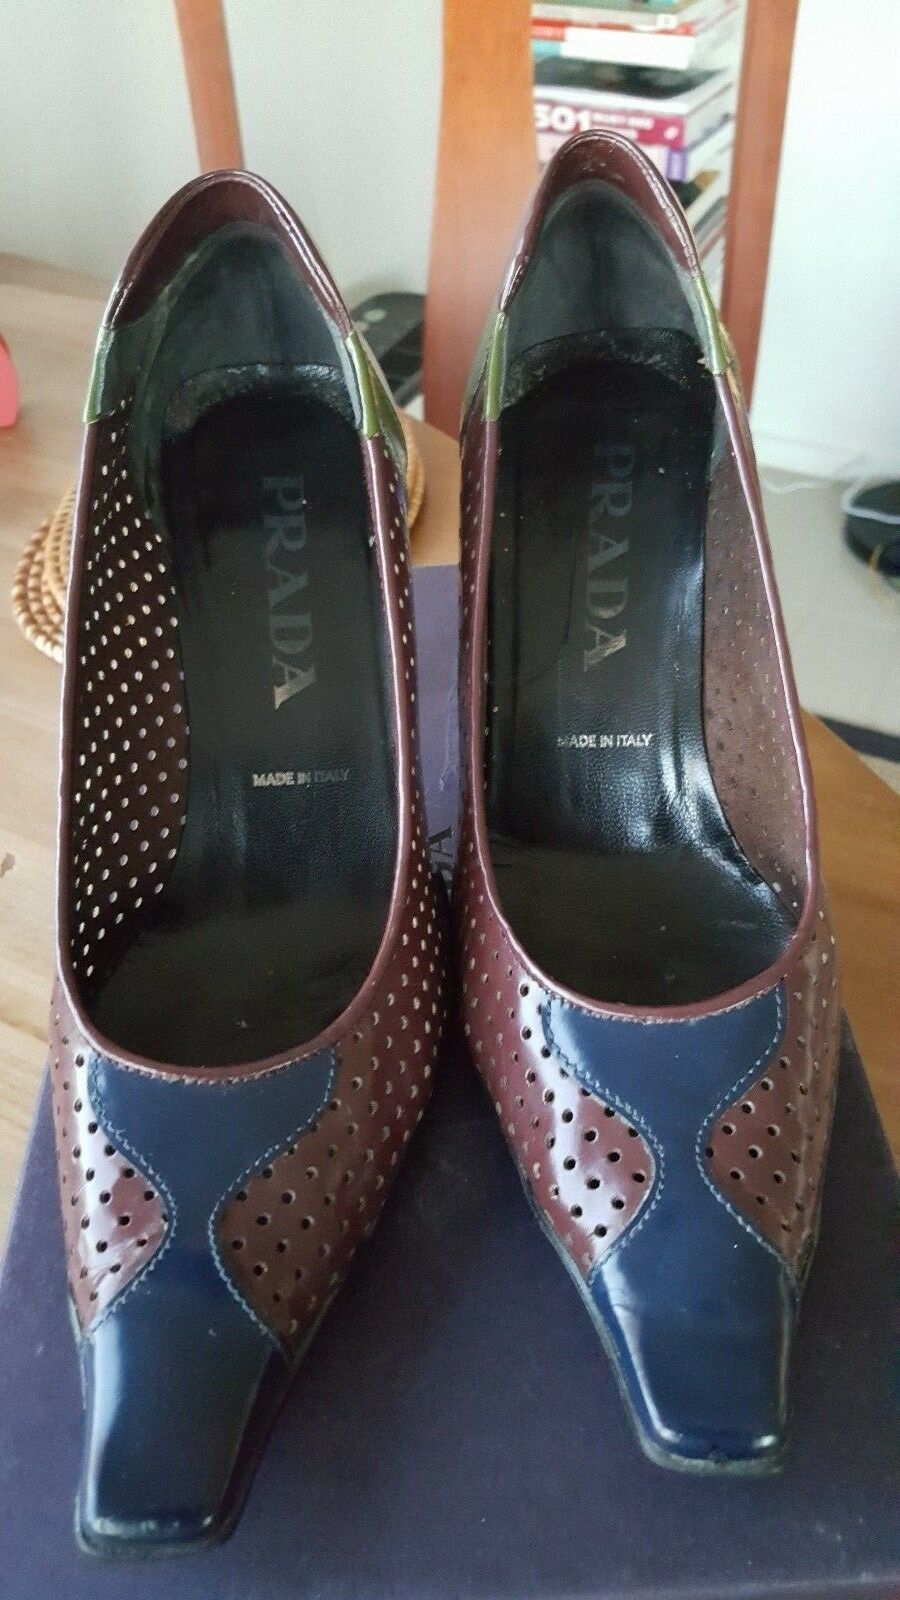 c1f141090 calzature doona in shoes size 36.5 pelle Prada nuftmg3135-Heels ...